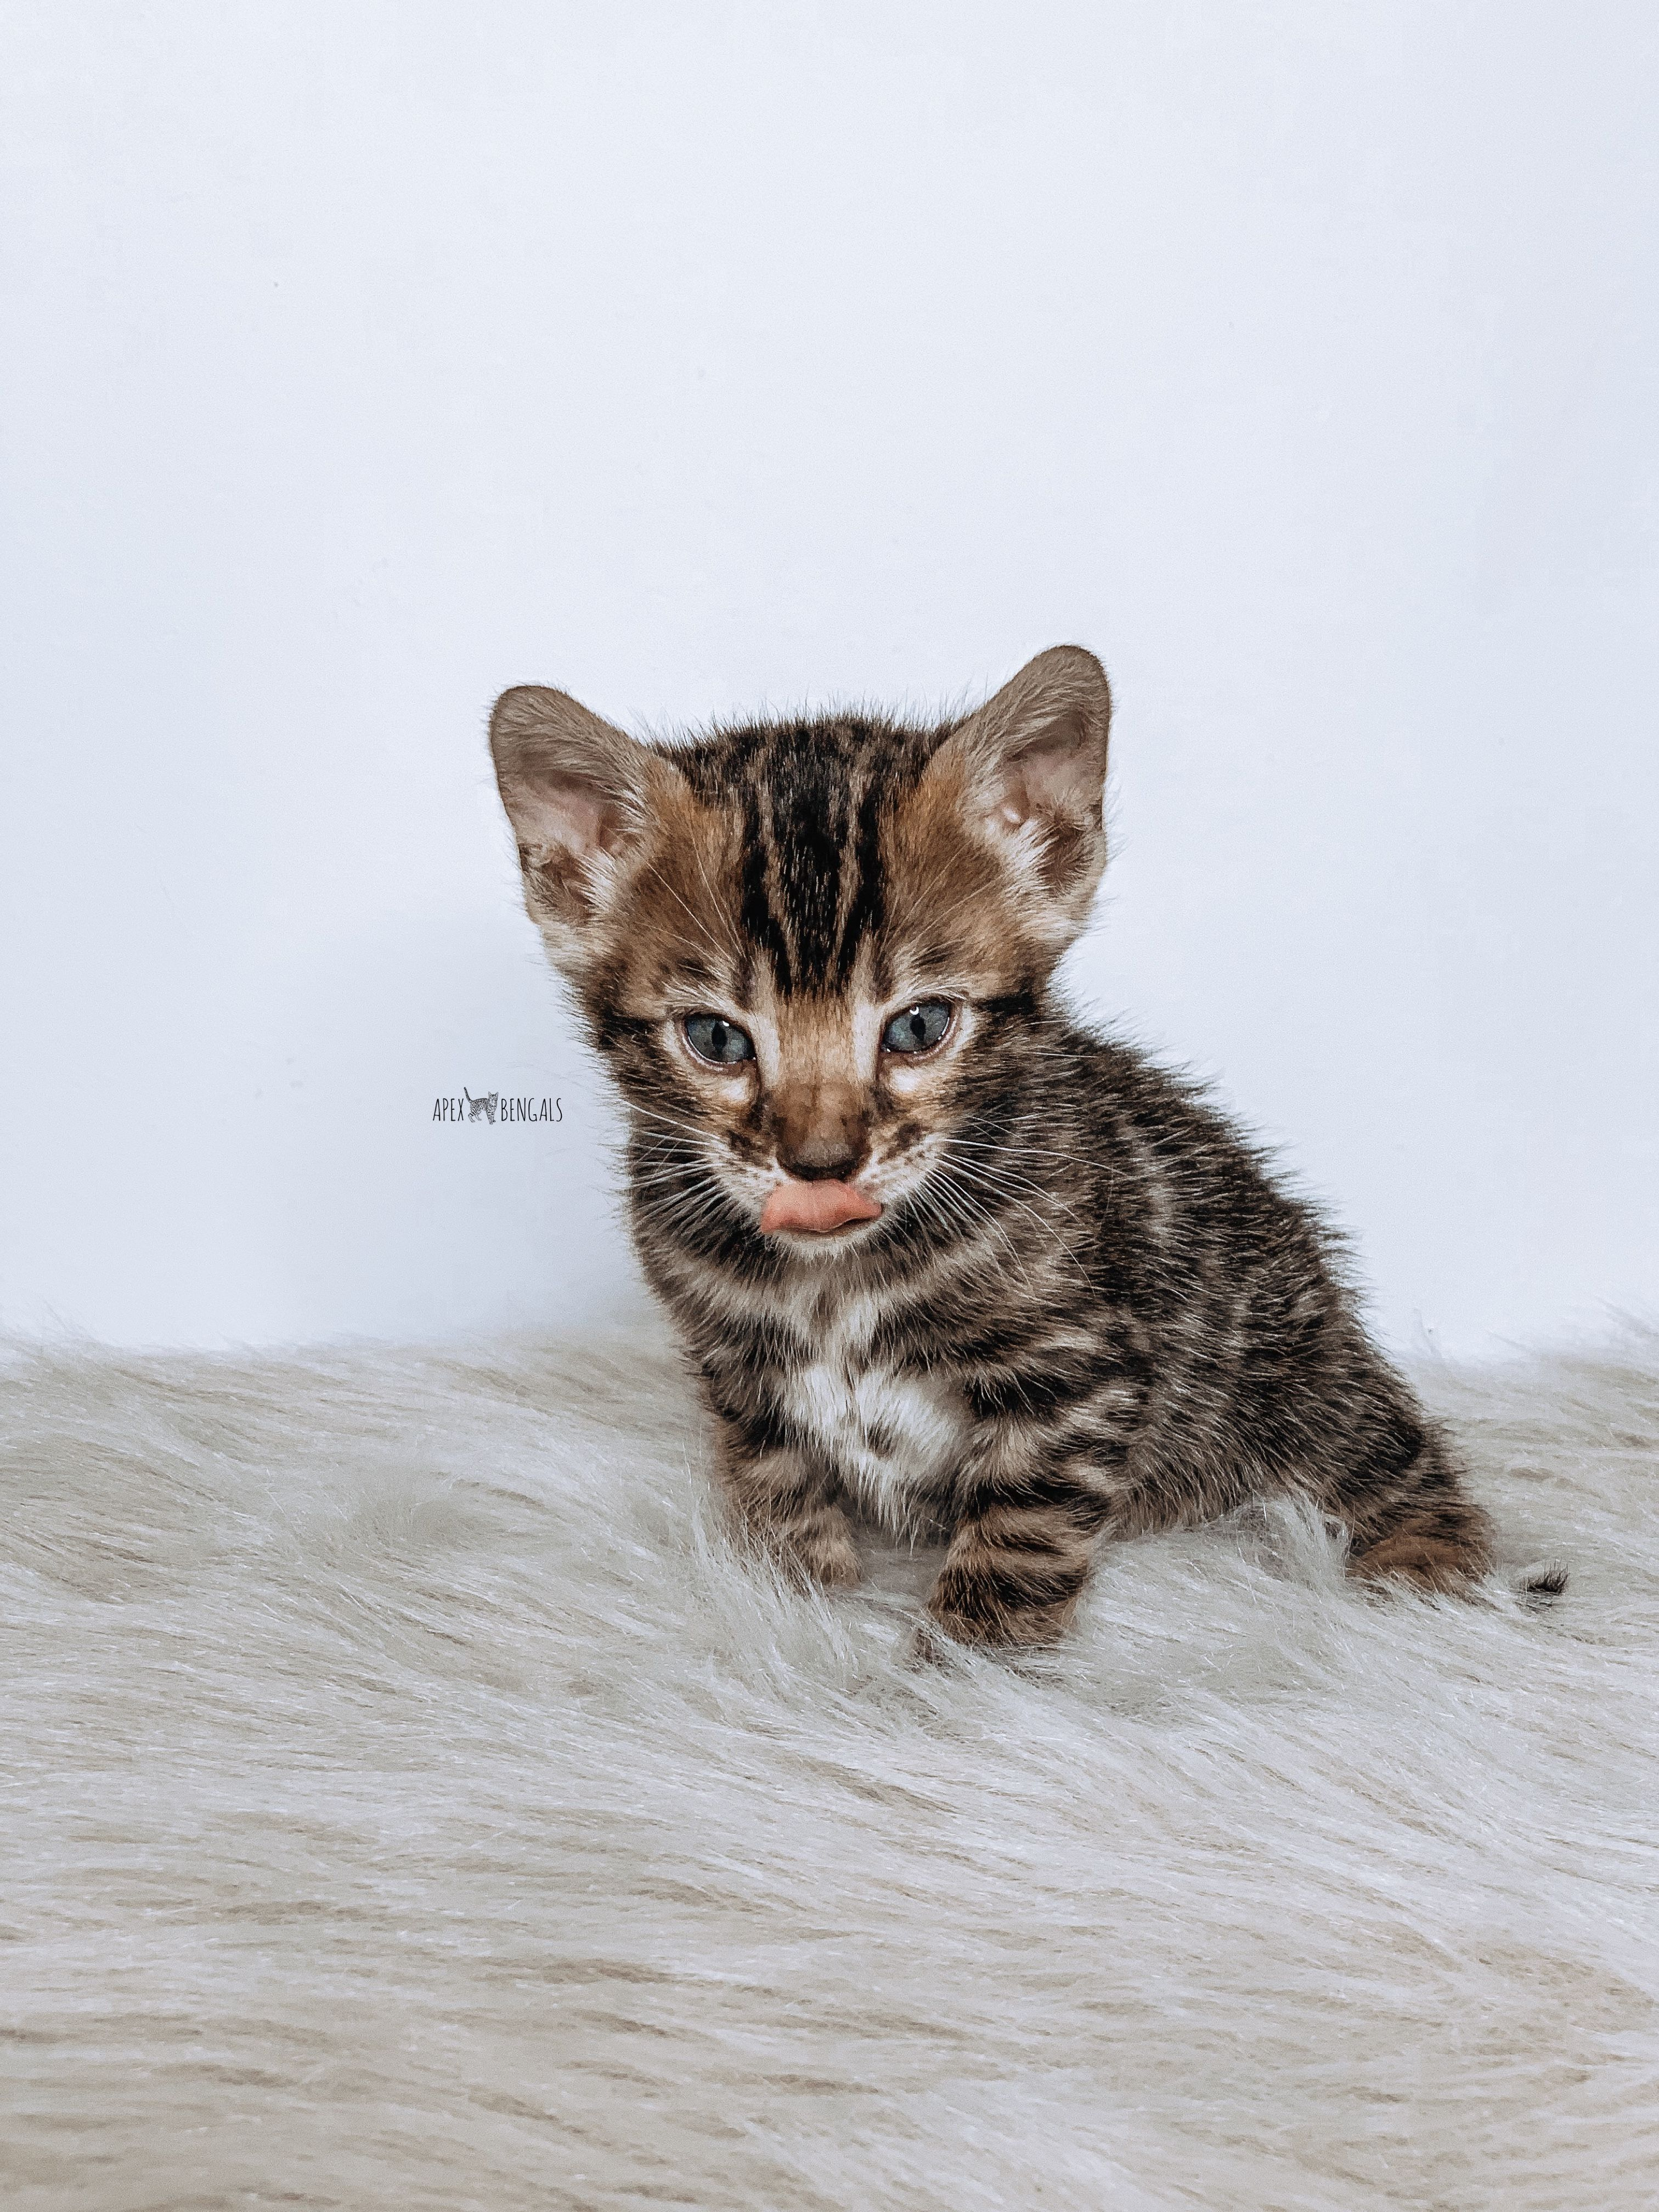 The Cutest Brown Bengal From Apexbengals Apexbengals Bengal Kittens For Sale Bengal Kitten Bengal